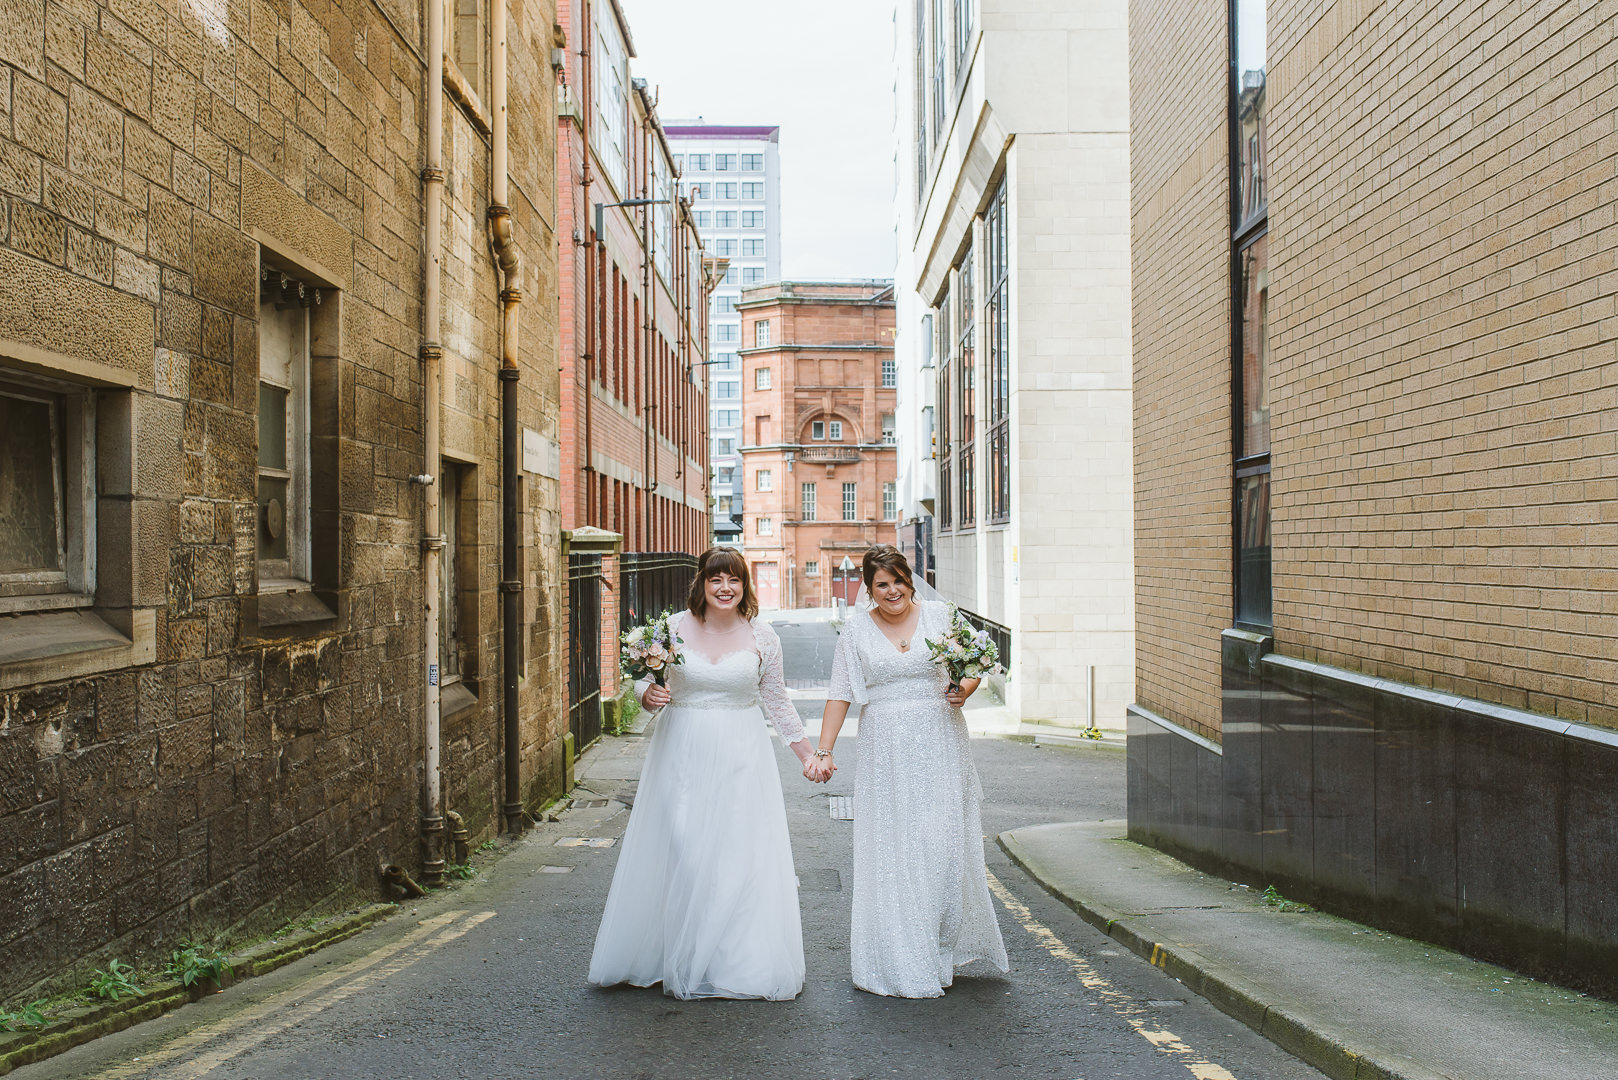 Same Sex Wedding Glasgow - From my best wedding photos from 2019